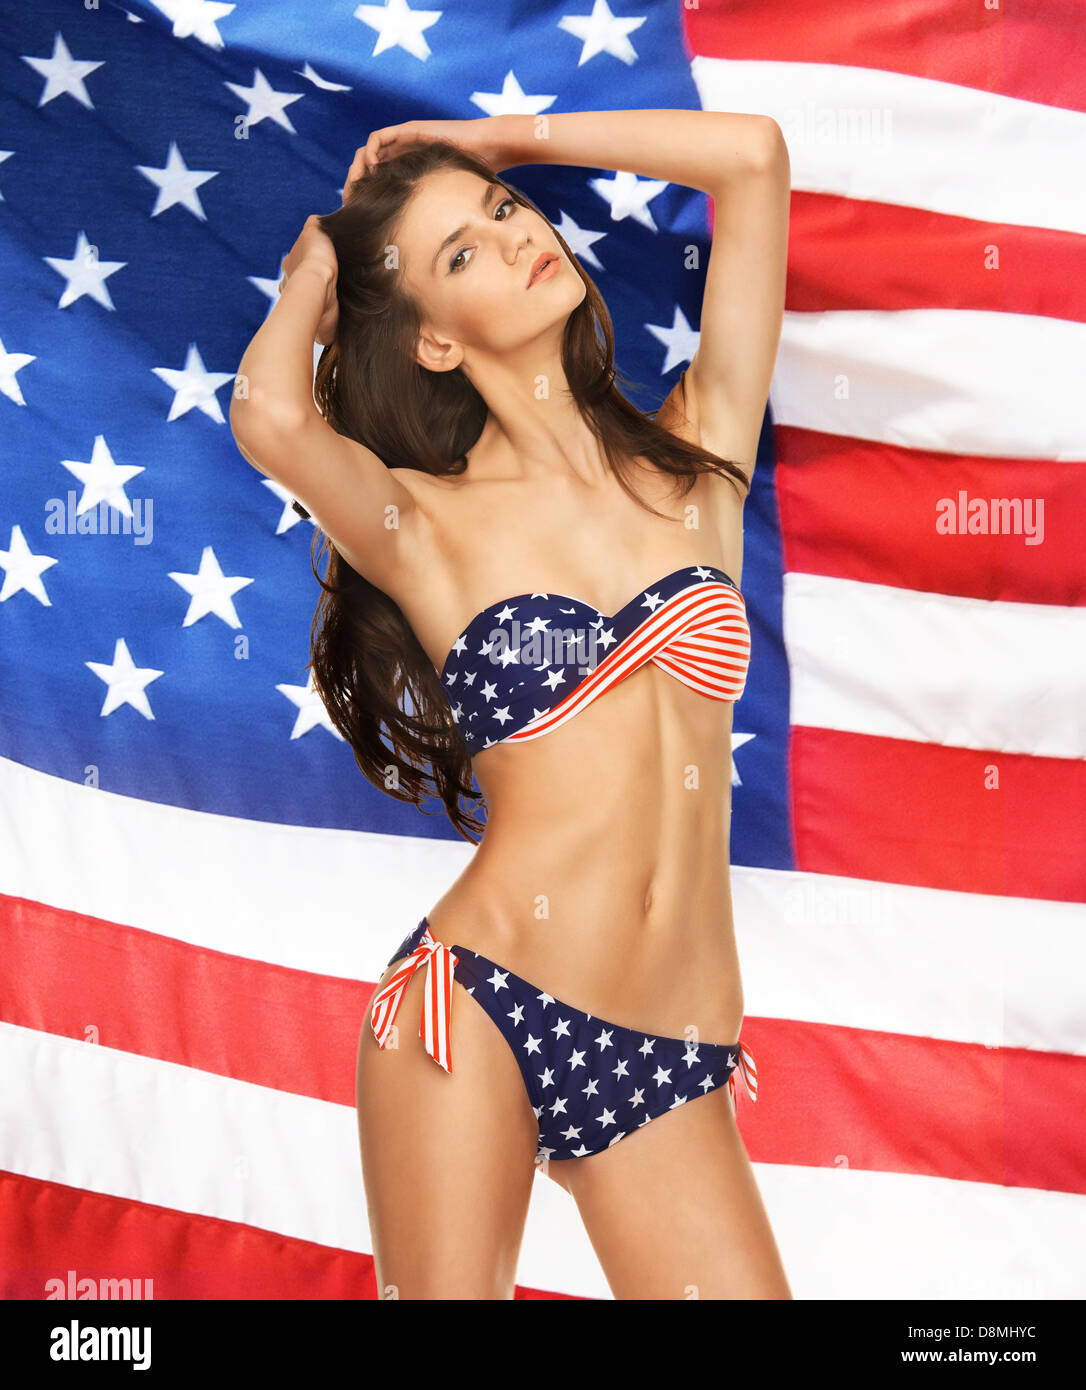 989c339e689ca model in bikini with american flag Stock Photo: 57001488 - Alamy